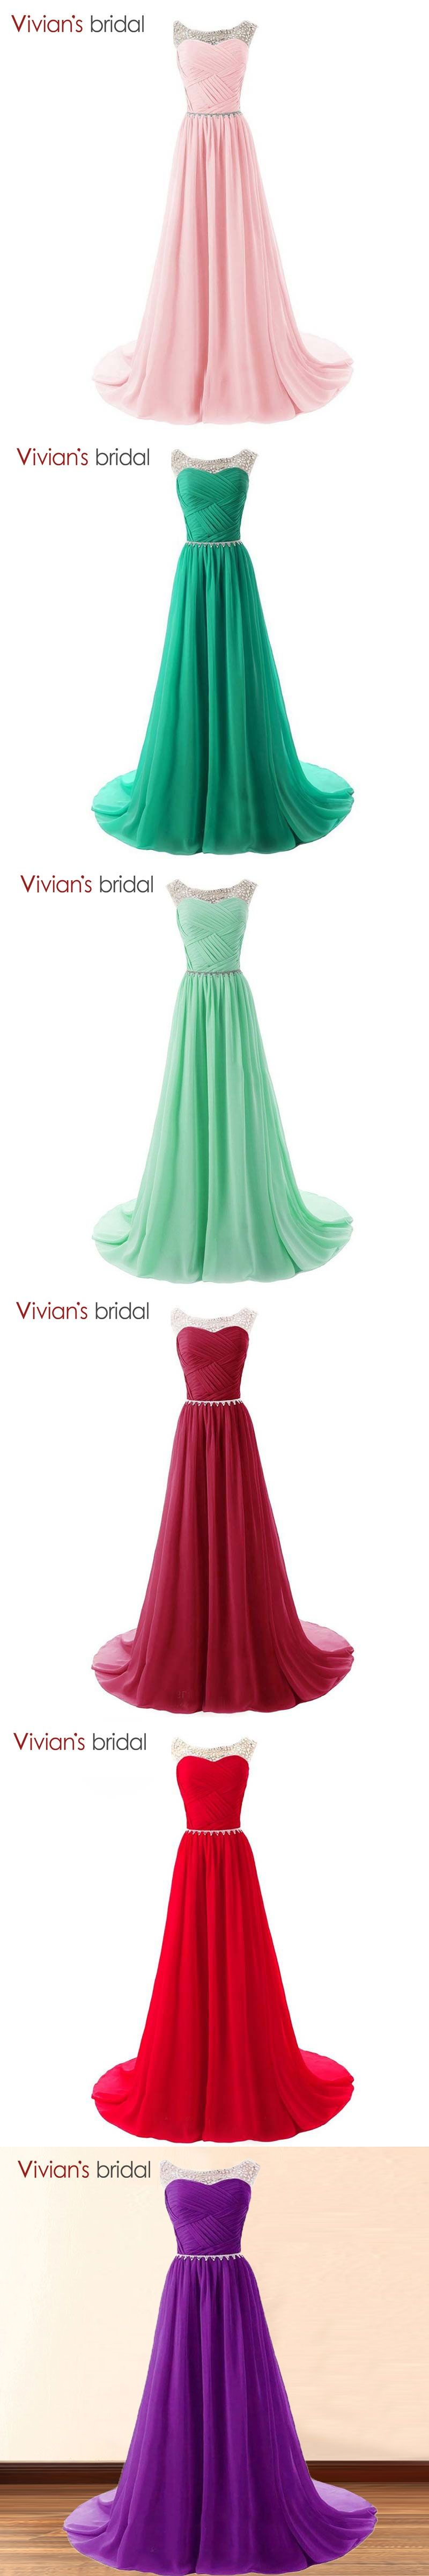 Free shipping In stock Beaded Evening Dresses A-Line Colorful Chiffon  Sleeveless vestido de festa 5333bb24eab2